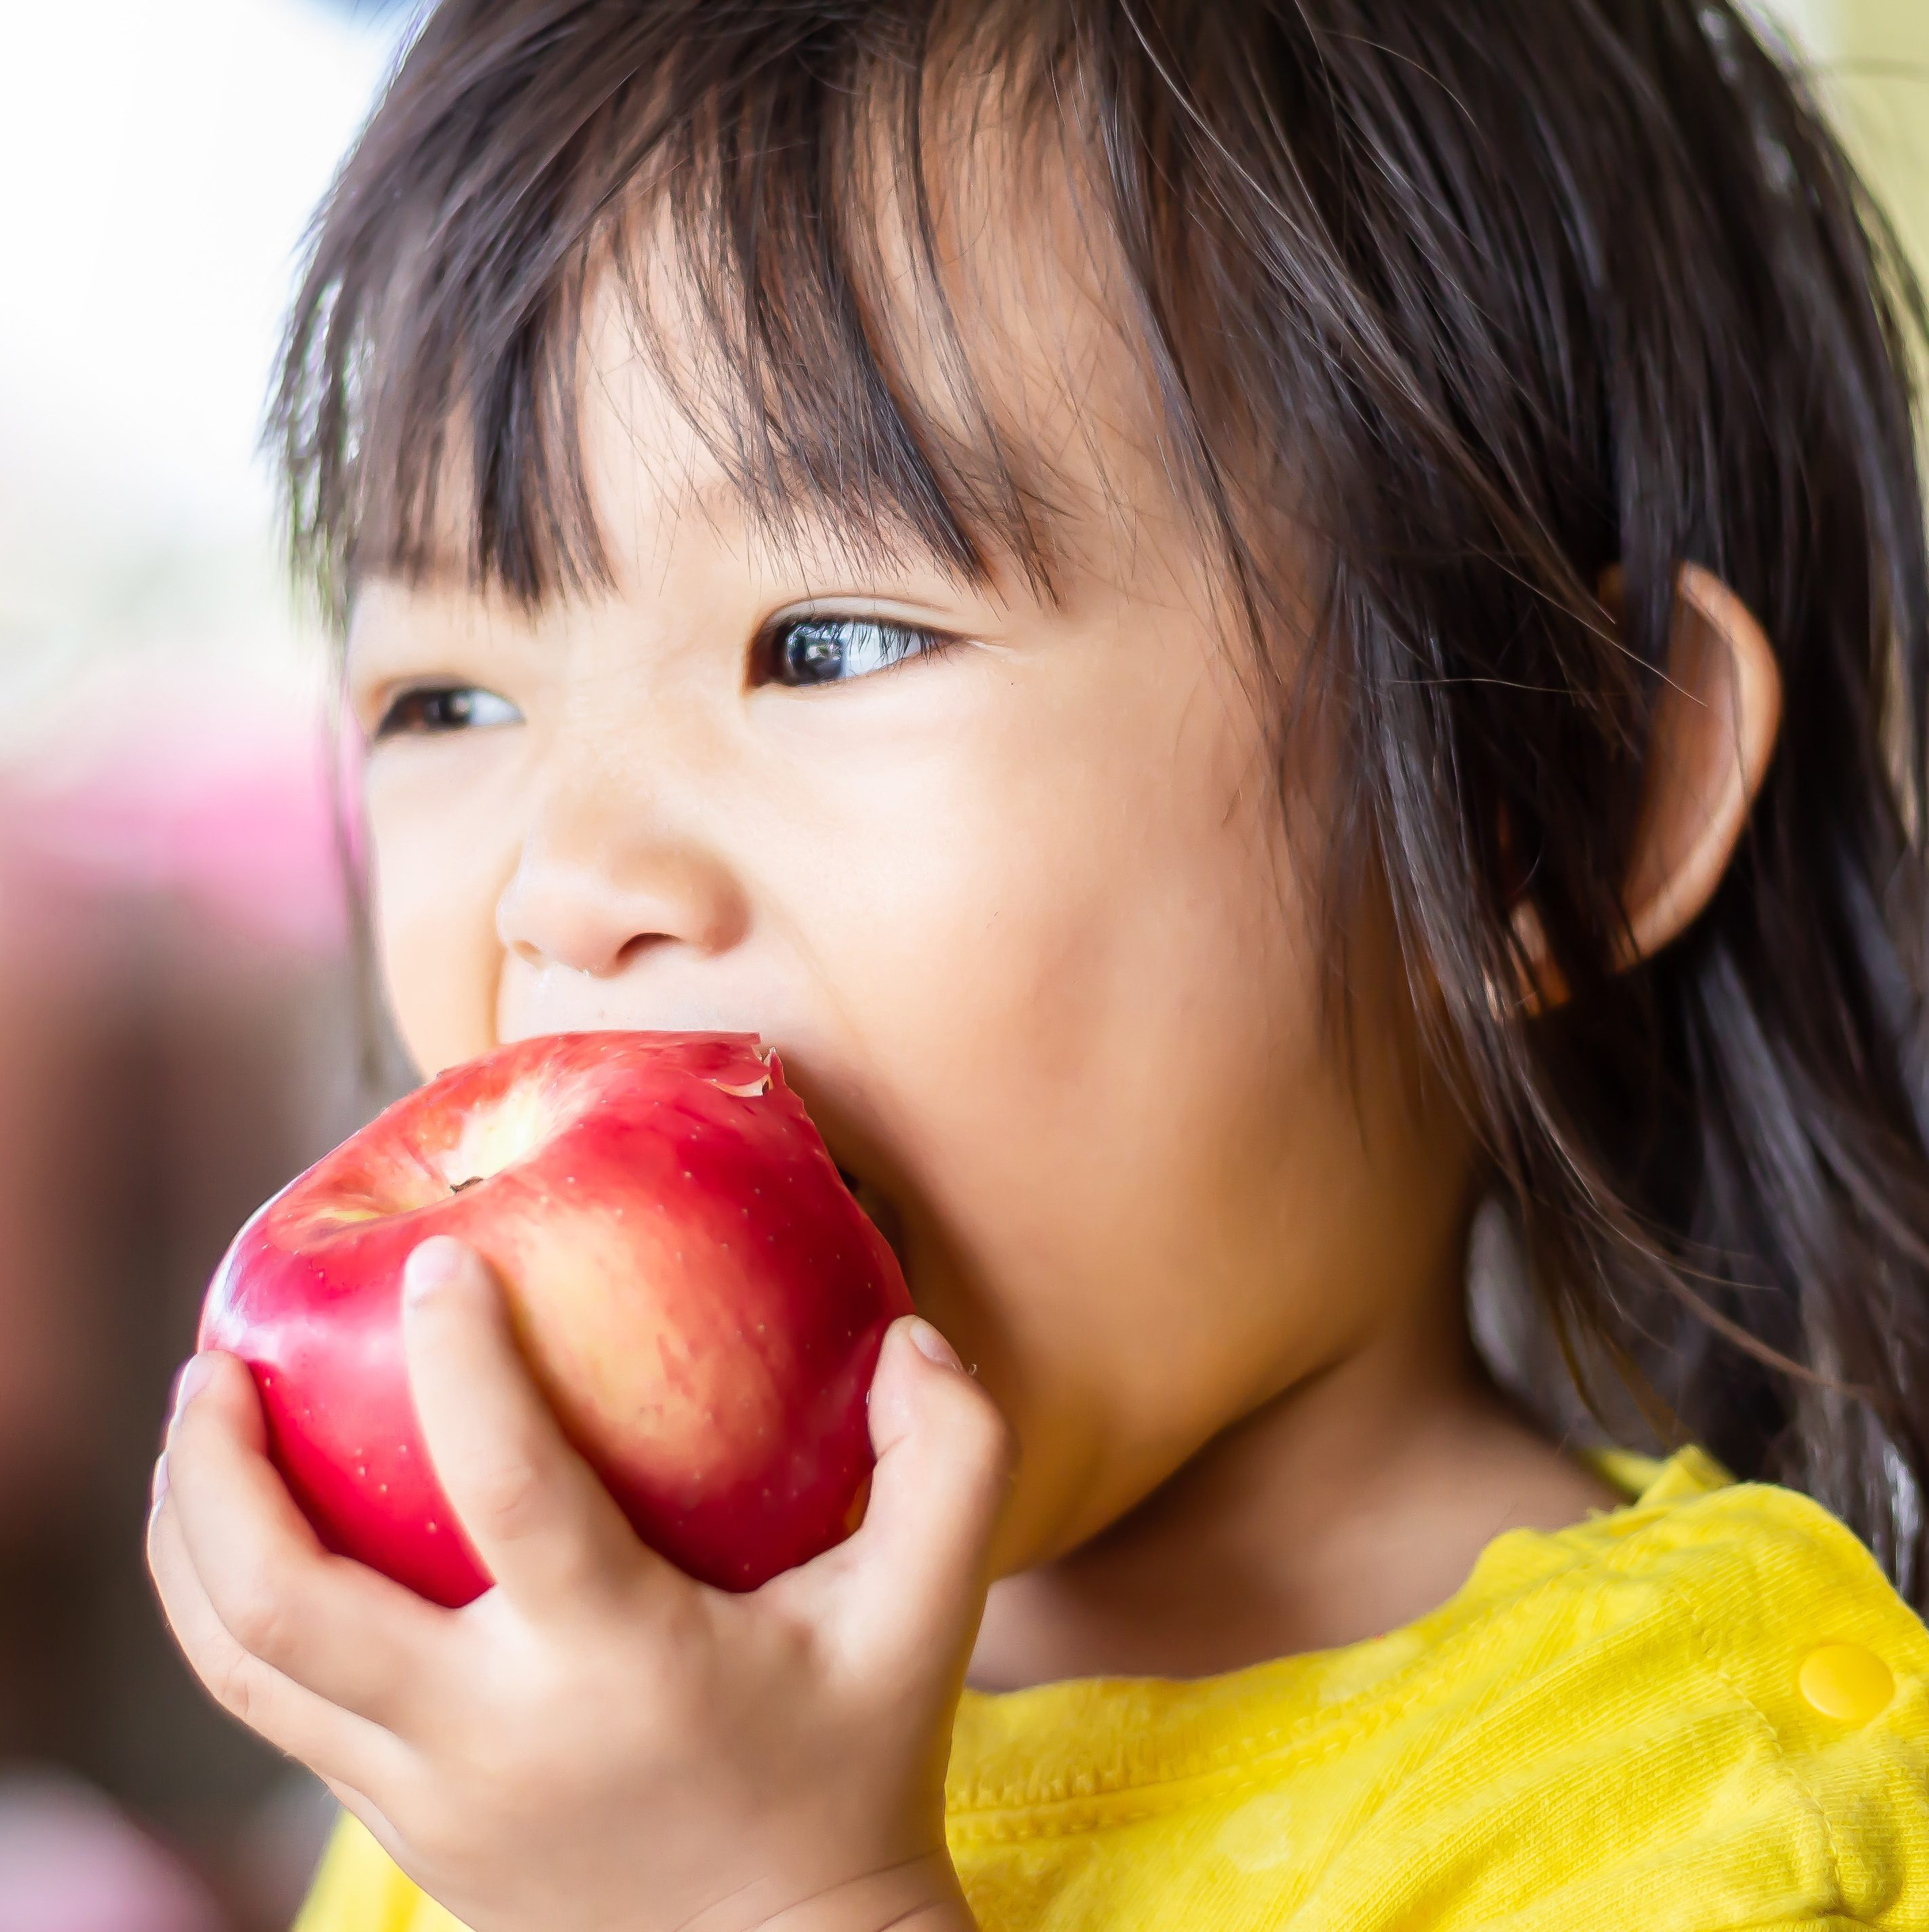 Portrait image of 1-2 years old of baby.  girl eating and biting an red apple. Enjoy eating moment. Healthy food and kid concept.